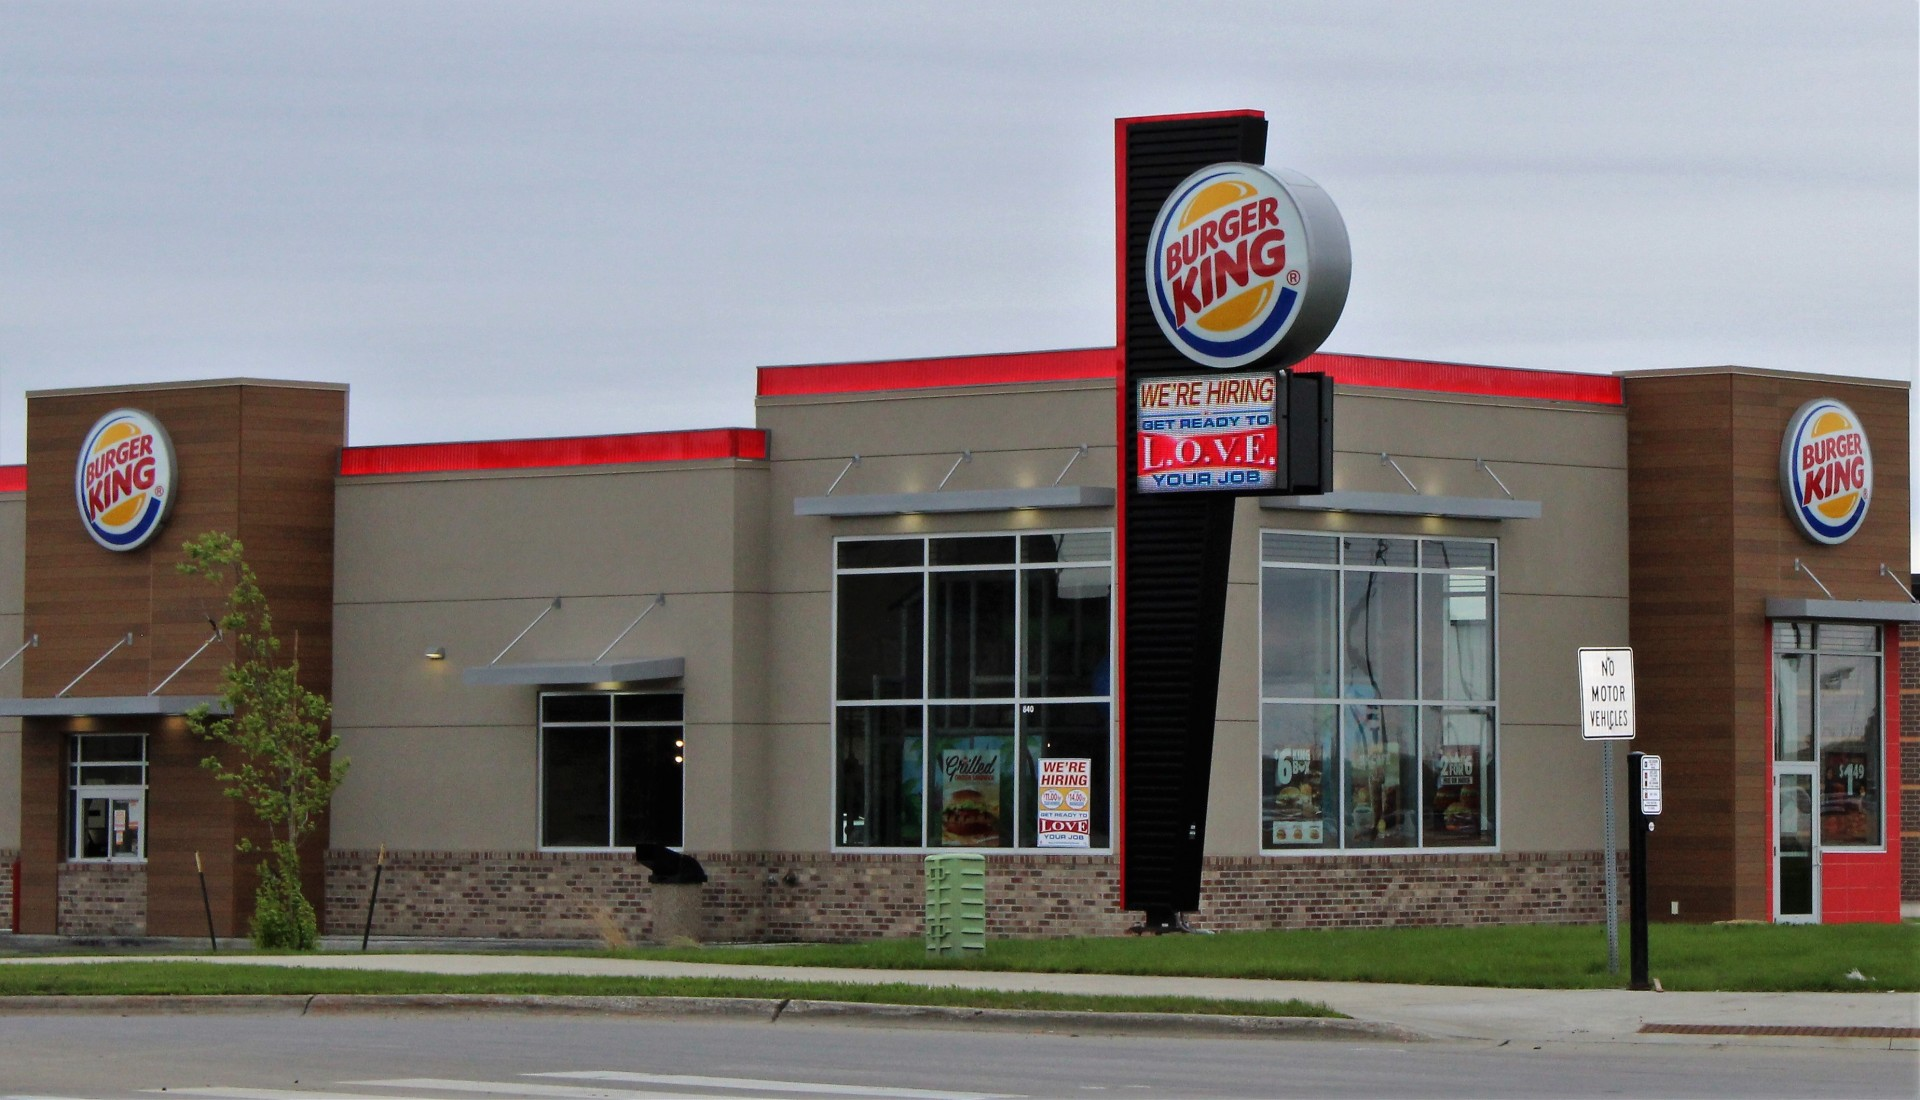 Burger King in Fargo North Dakota with exterior of stucco and brick with red accents